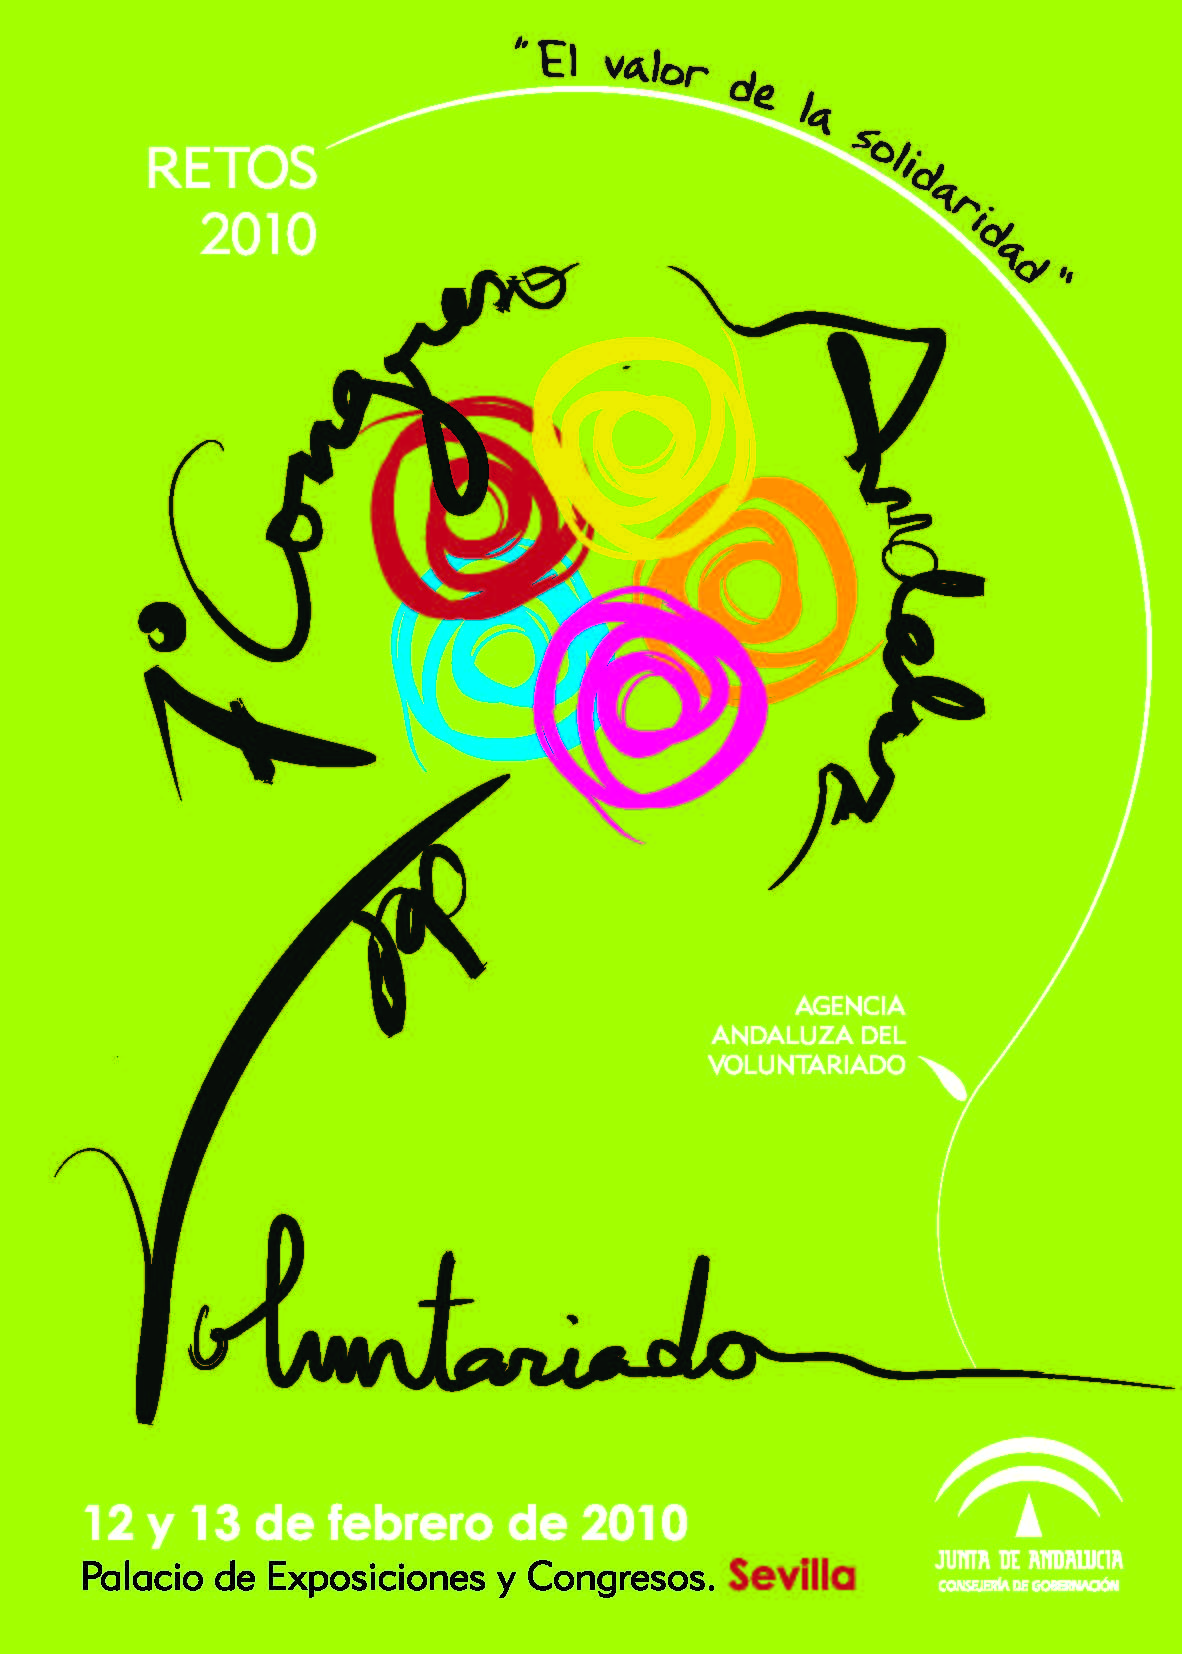 7� Congreso Andaluz del Voluntariado: Retos 2010